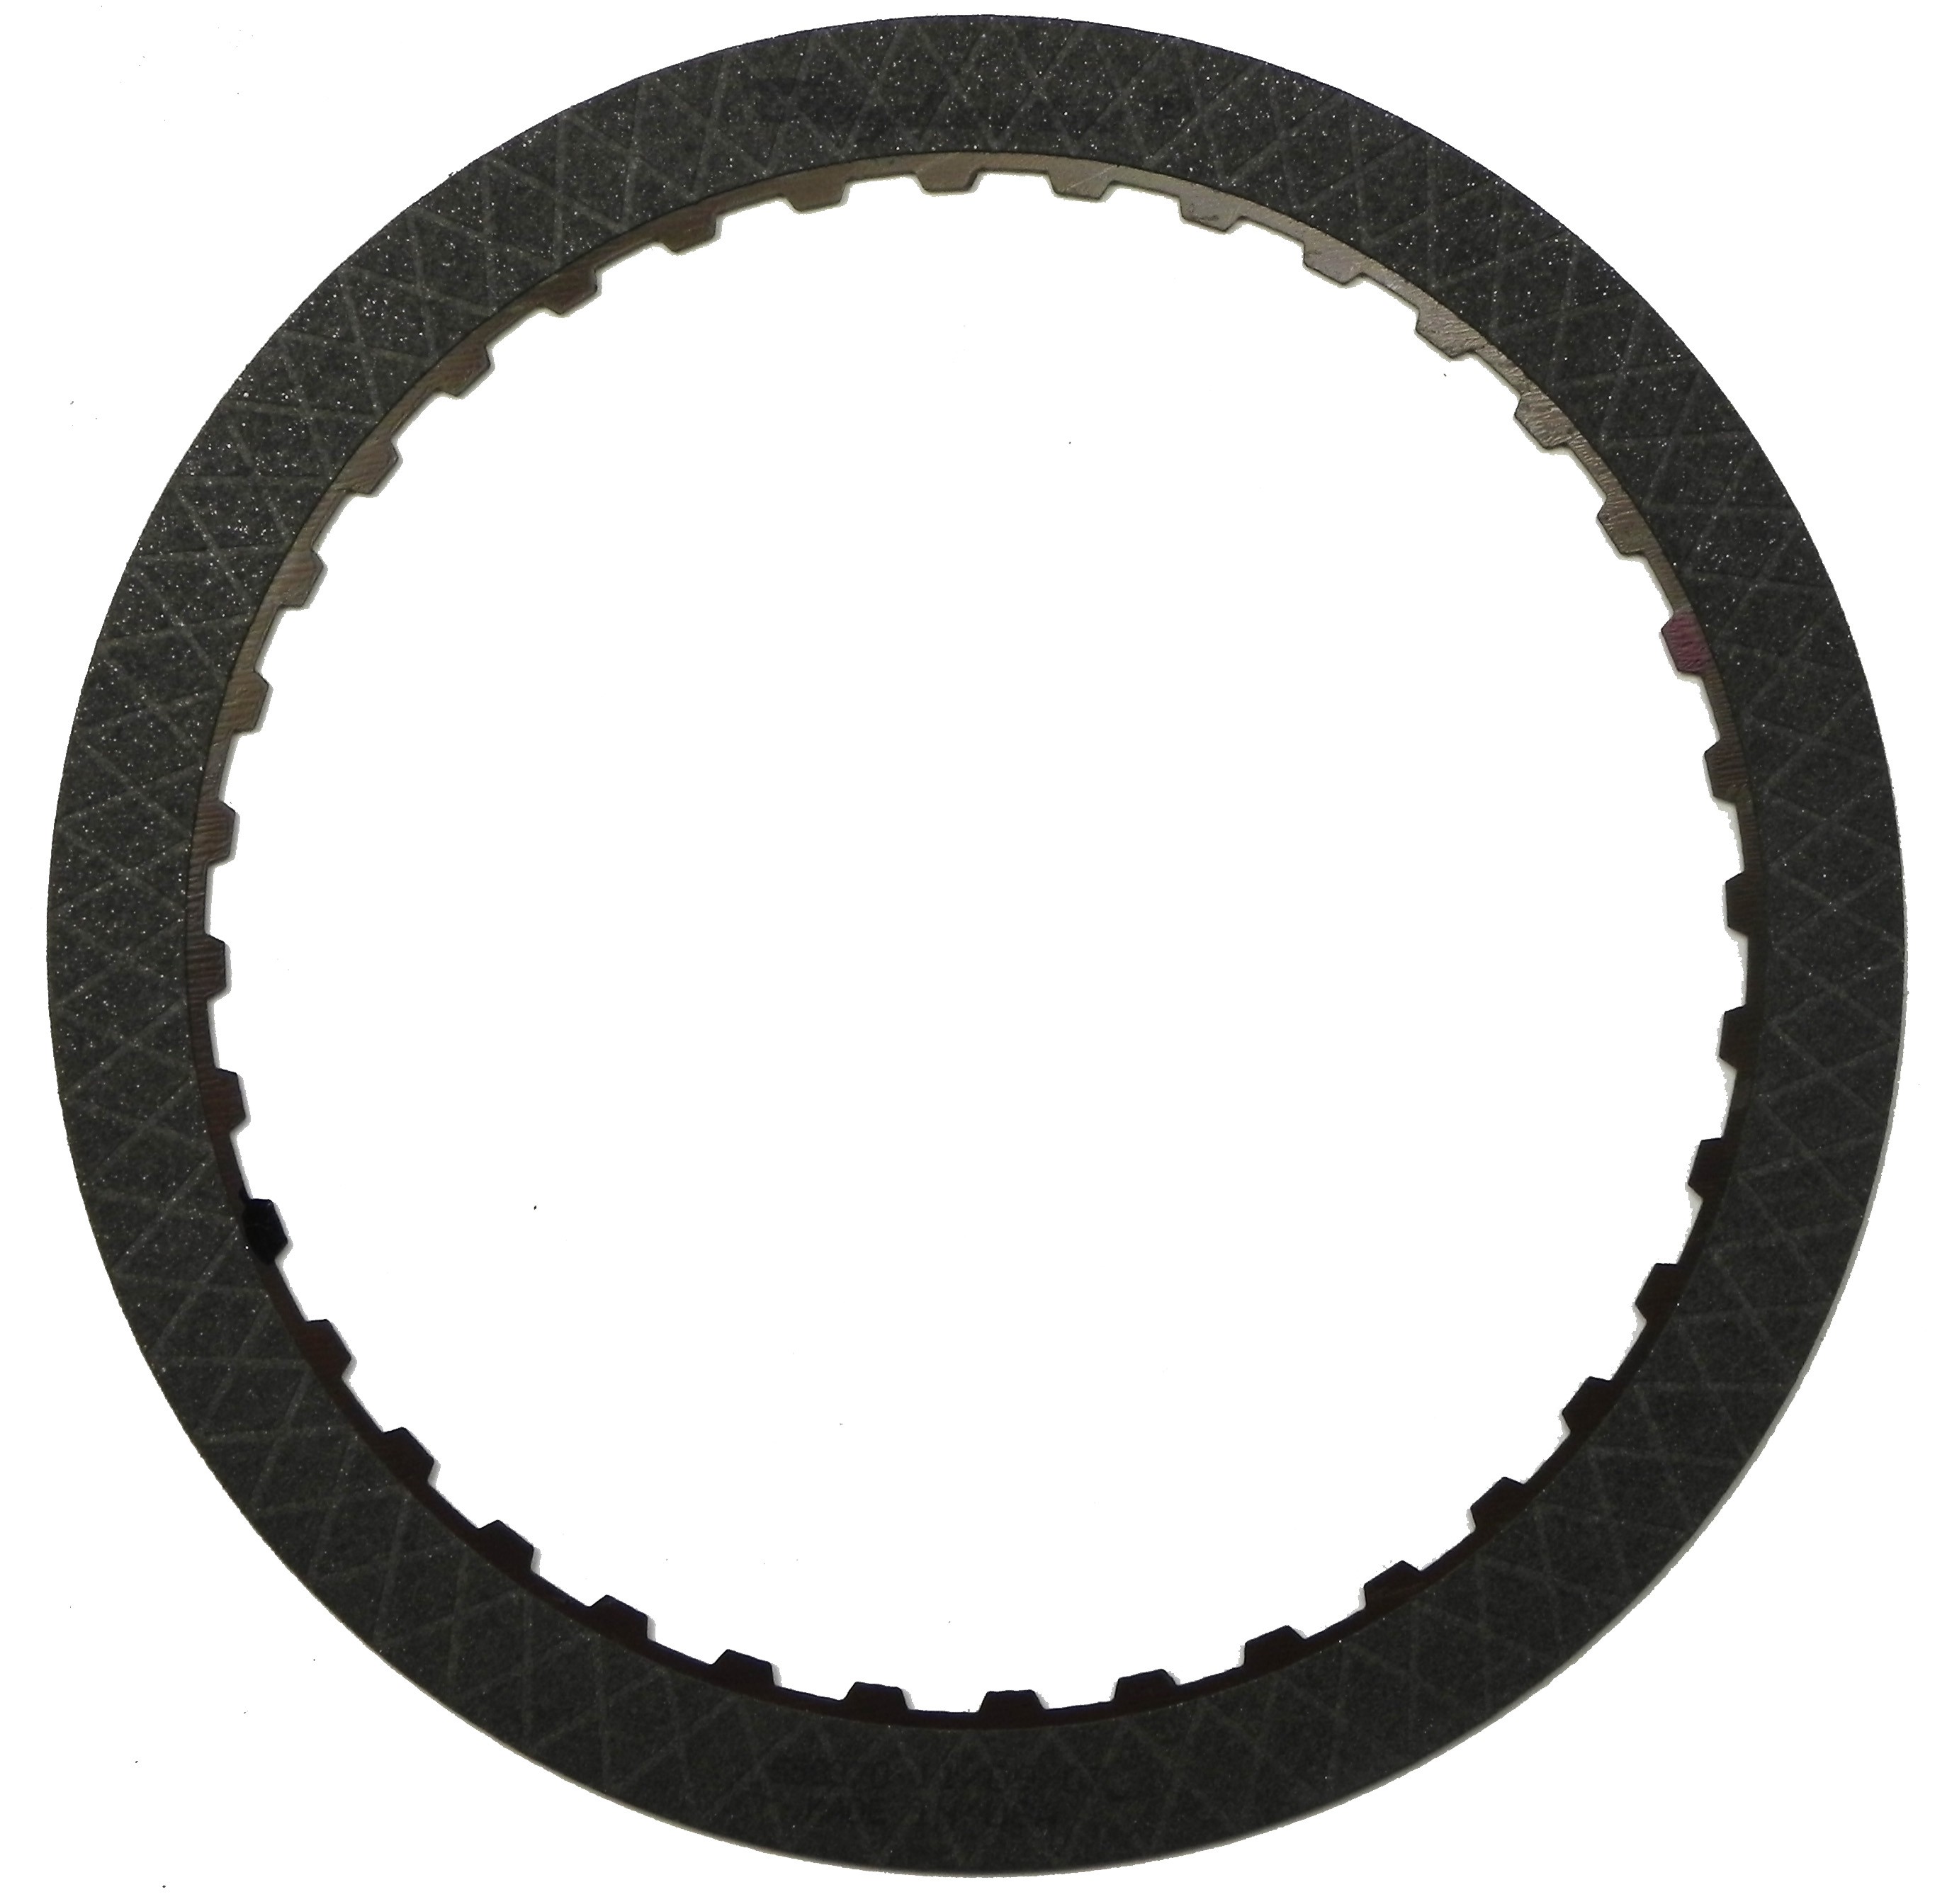 6L80, 6L90 High Energy Friction Clutch Plate